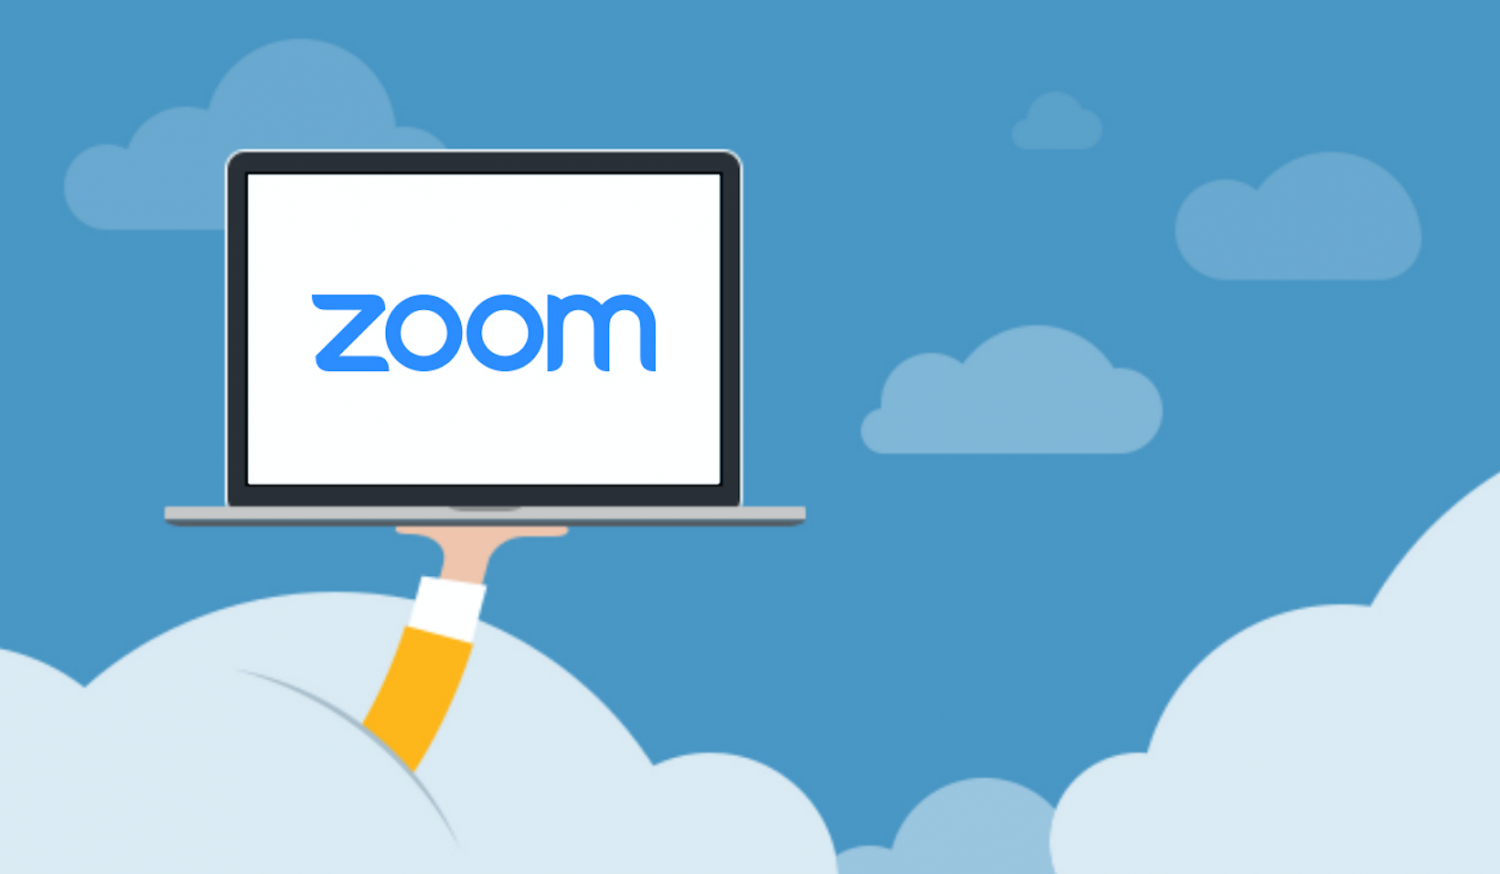 Cybersecurity Concerns Force Standard Charter to drop Zoom and Google Hangout from Video Conferencing Platforms